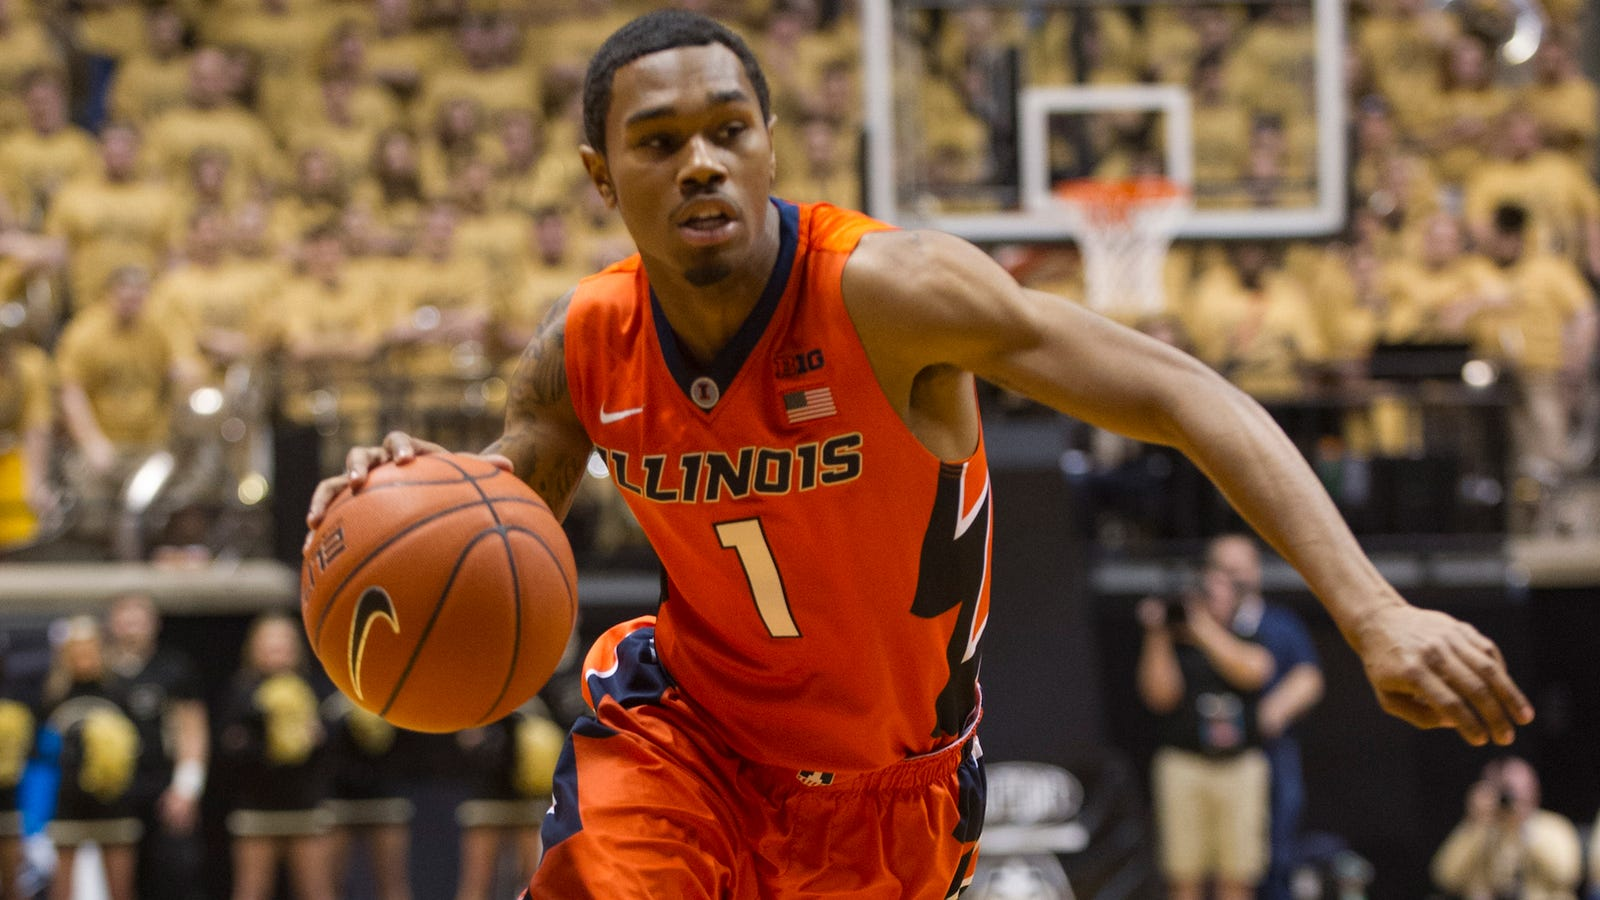 Report: Illinois Basketball Player Jaylon Tate Arrested For Punching